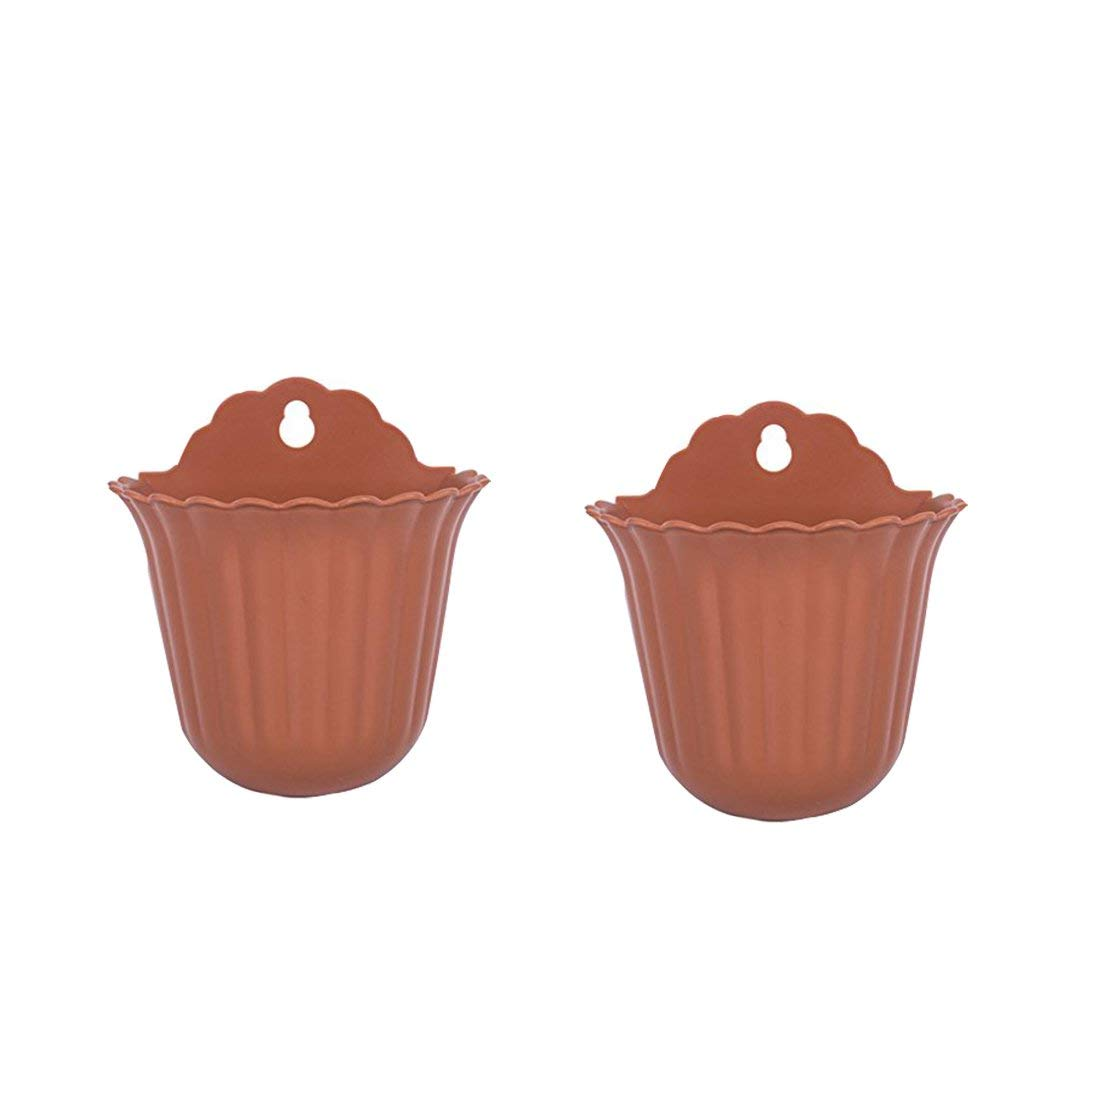 2 Pack Wall Planter, XSHION Wall Mounted Flower Pots/ Hanging Succulent Pots/ Hanging Planter Indoor Decorative (Pottery Color)